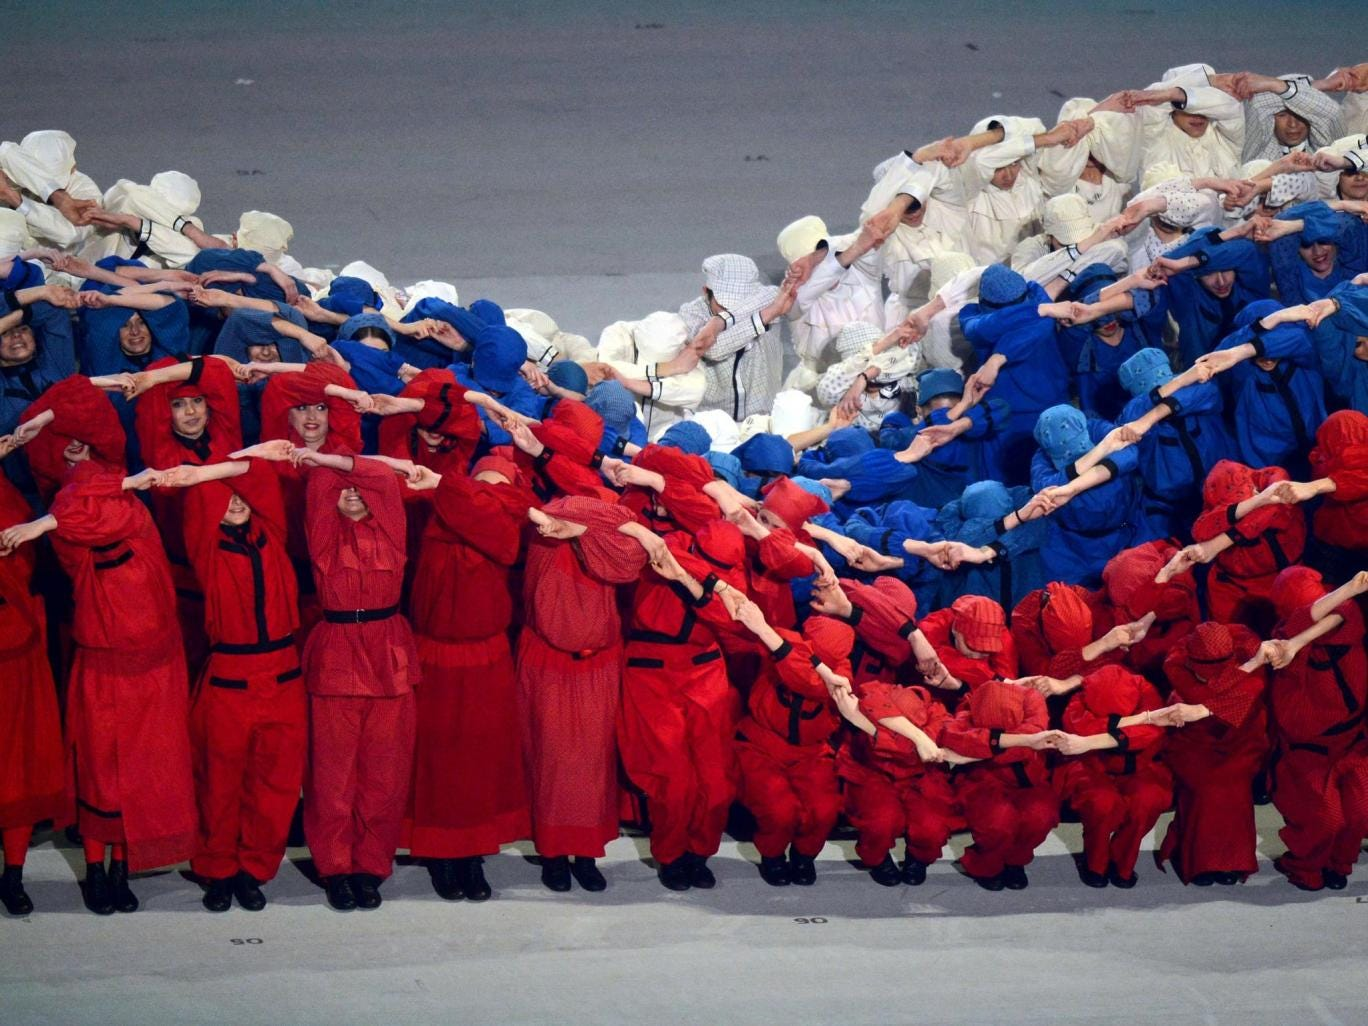 Performers simulate the Russian flag moving in the wind during the opening ceremony of the Paralympic Winter Games